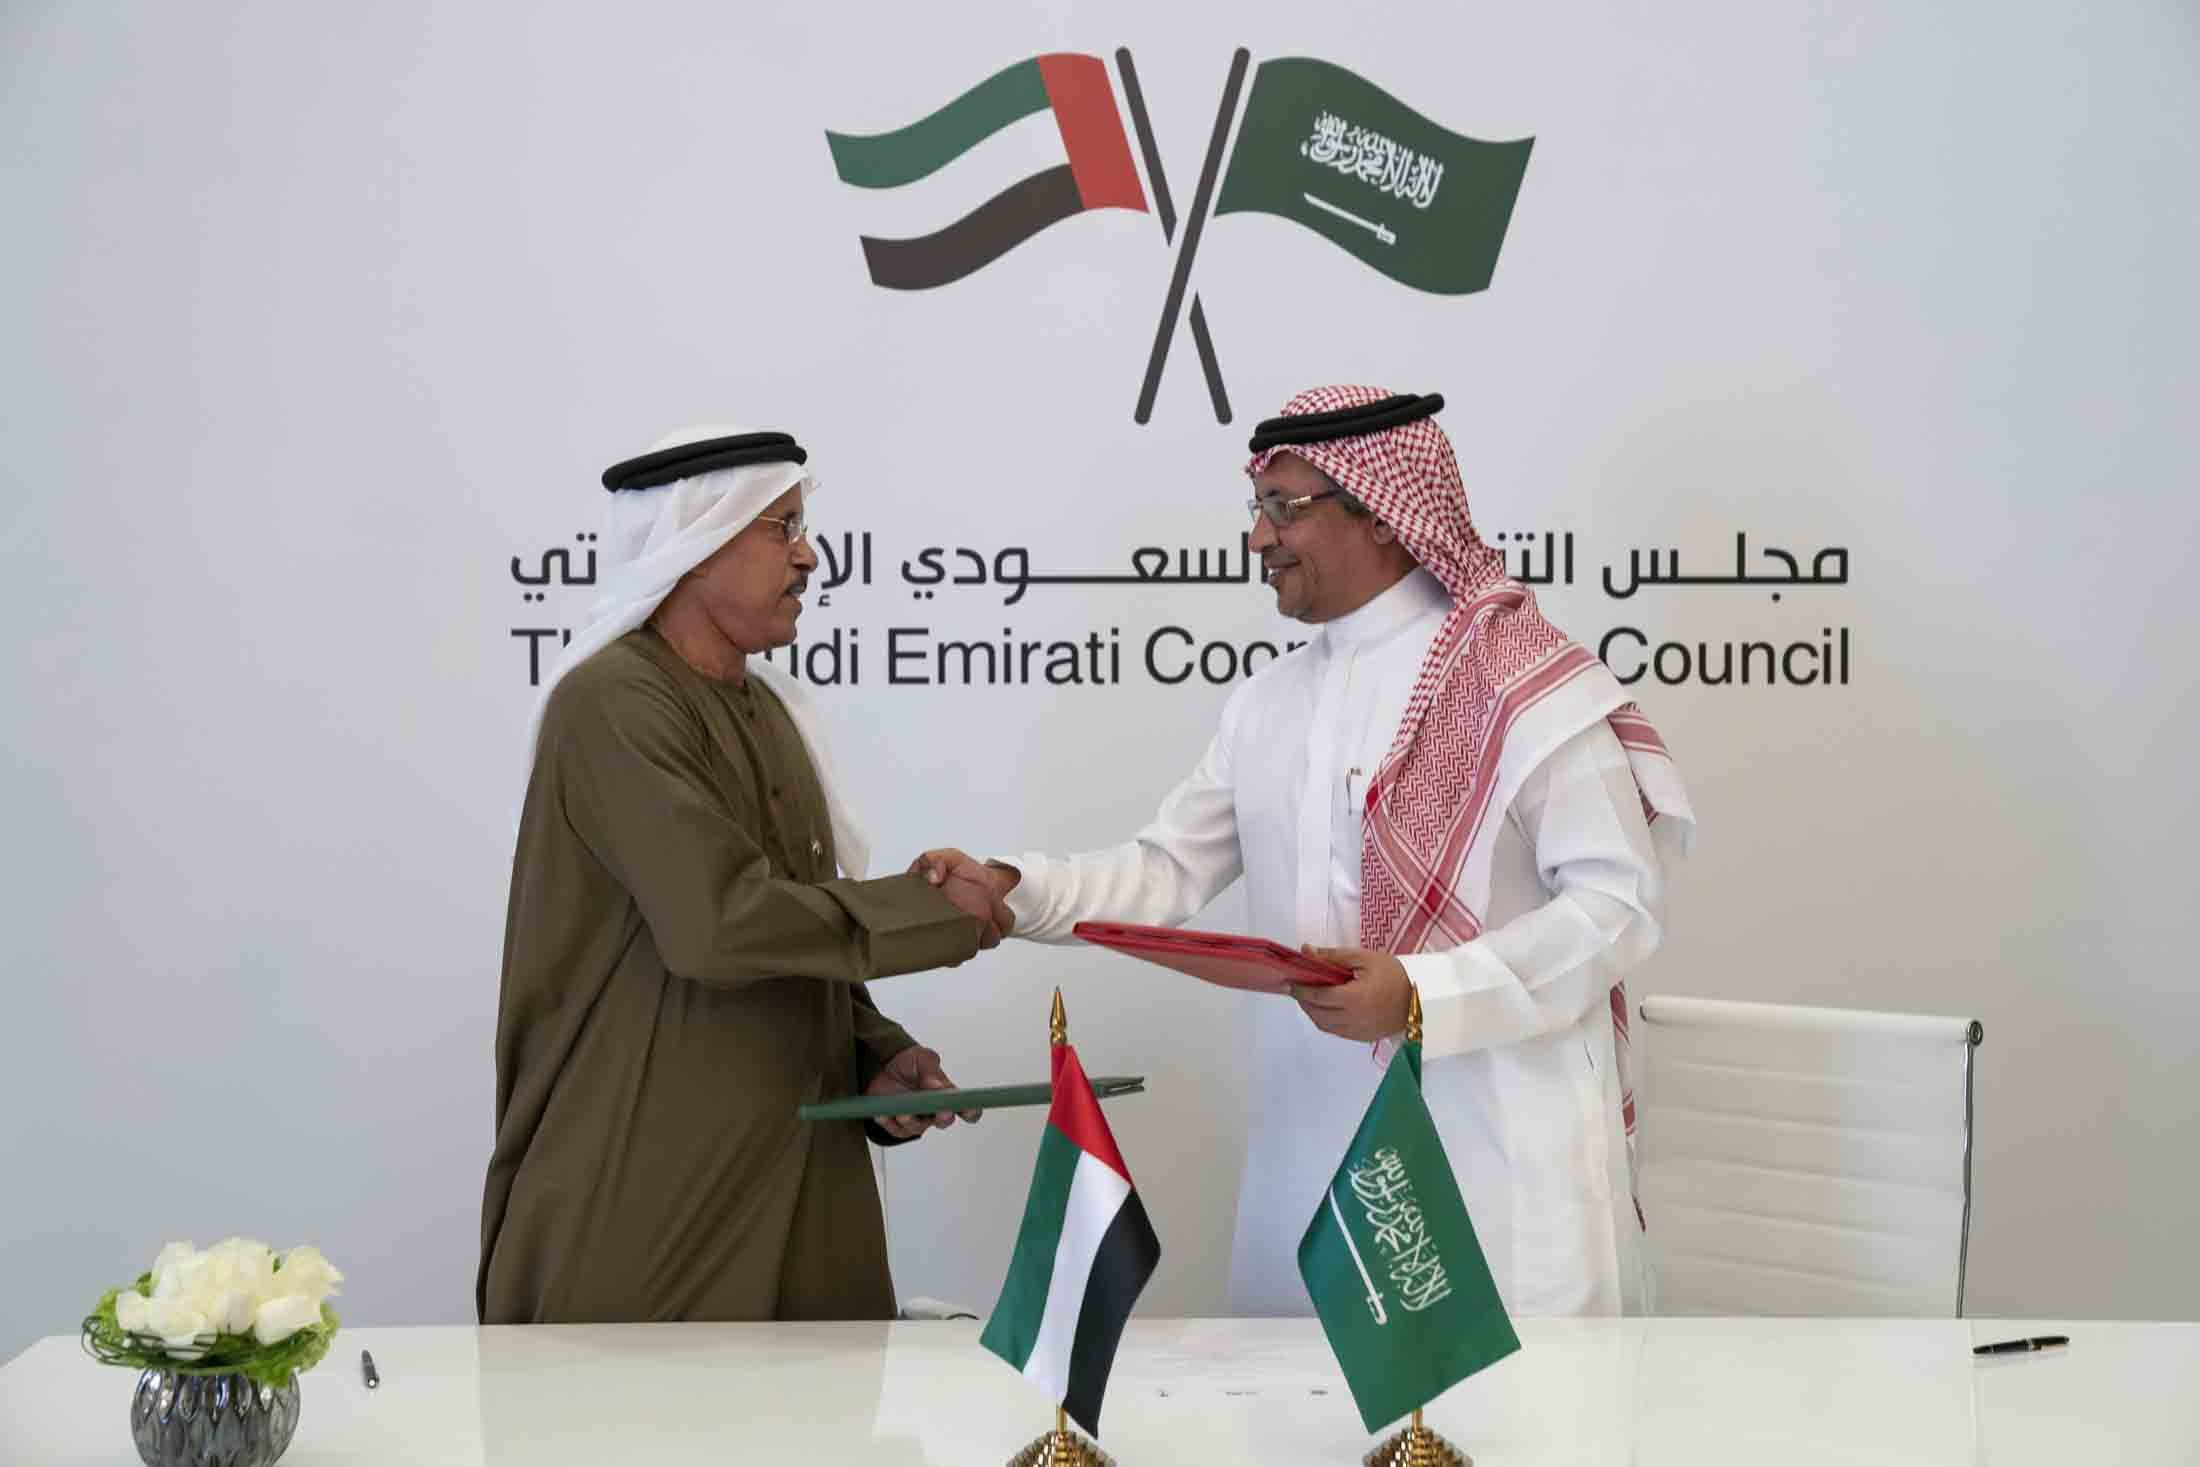 The benefits of the Saudi-UAE joint initiatives